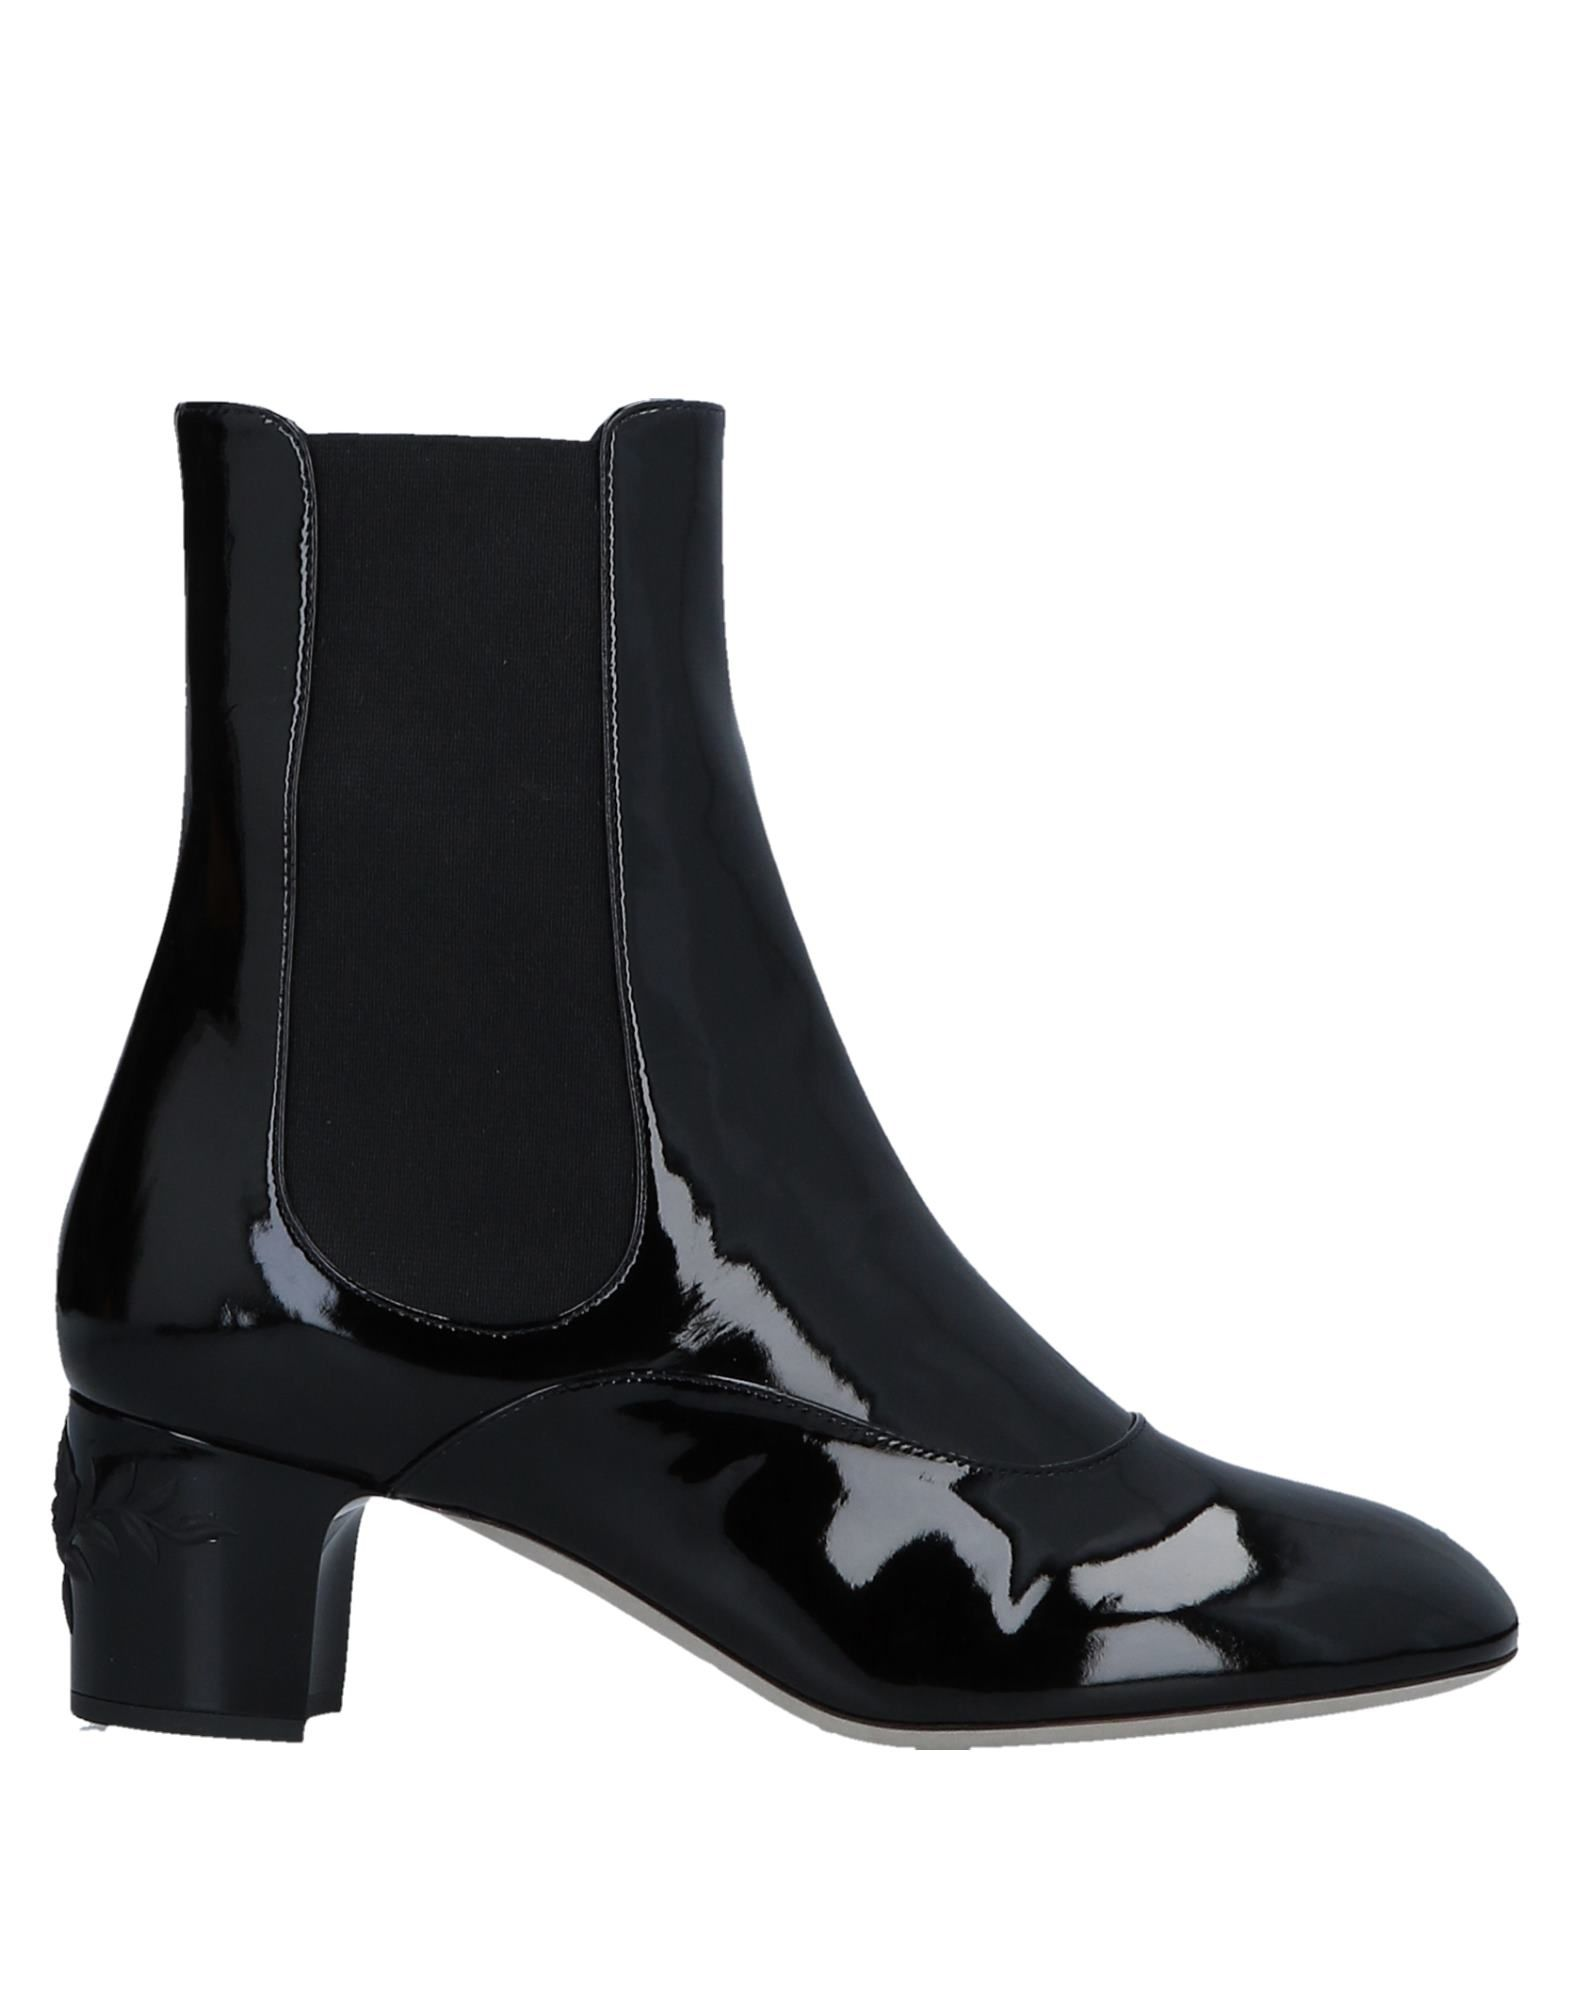 RAYNE Ankle Boot in Black